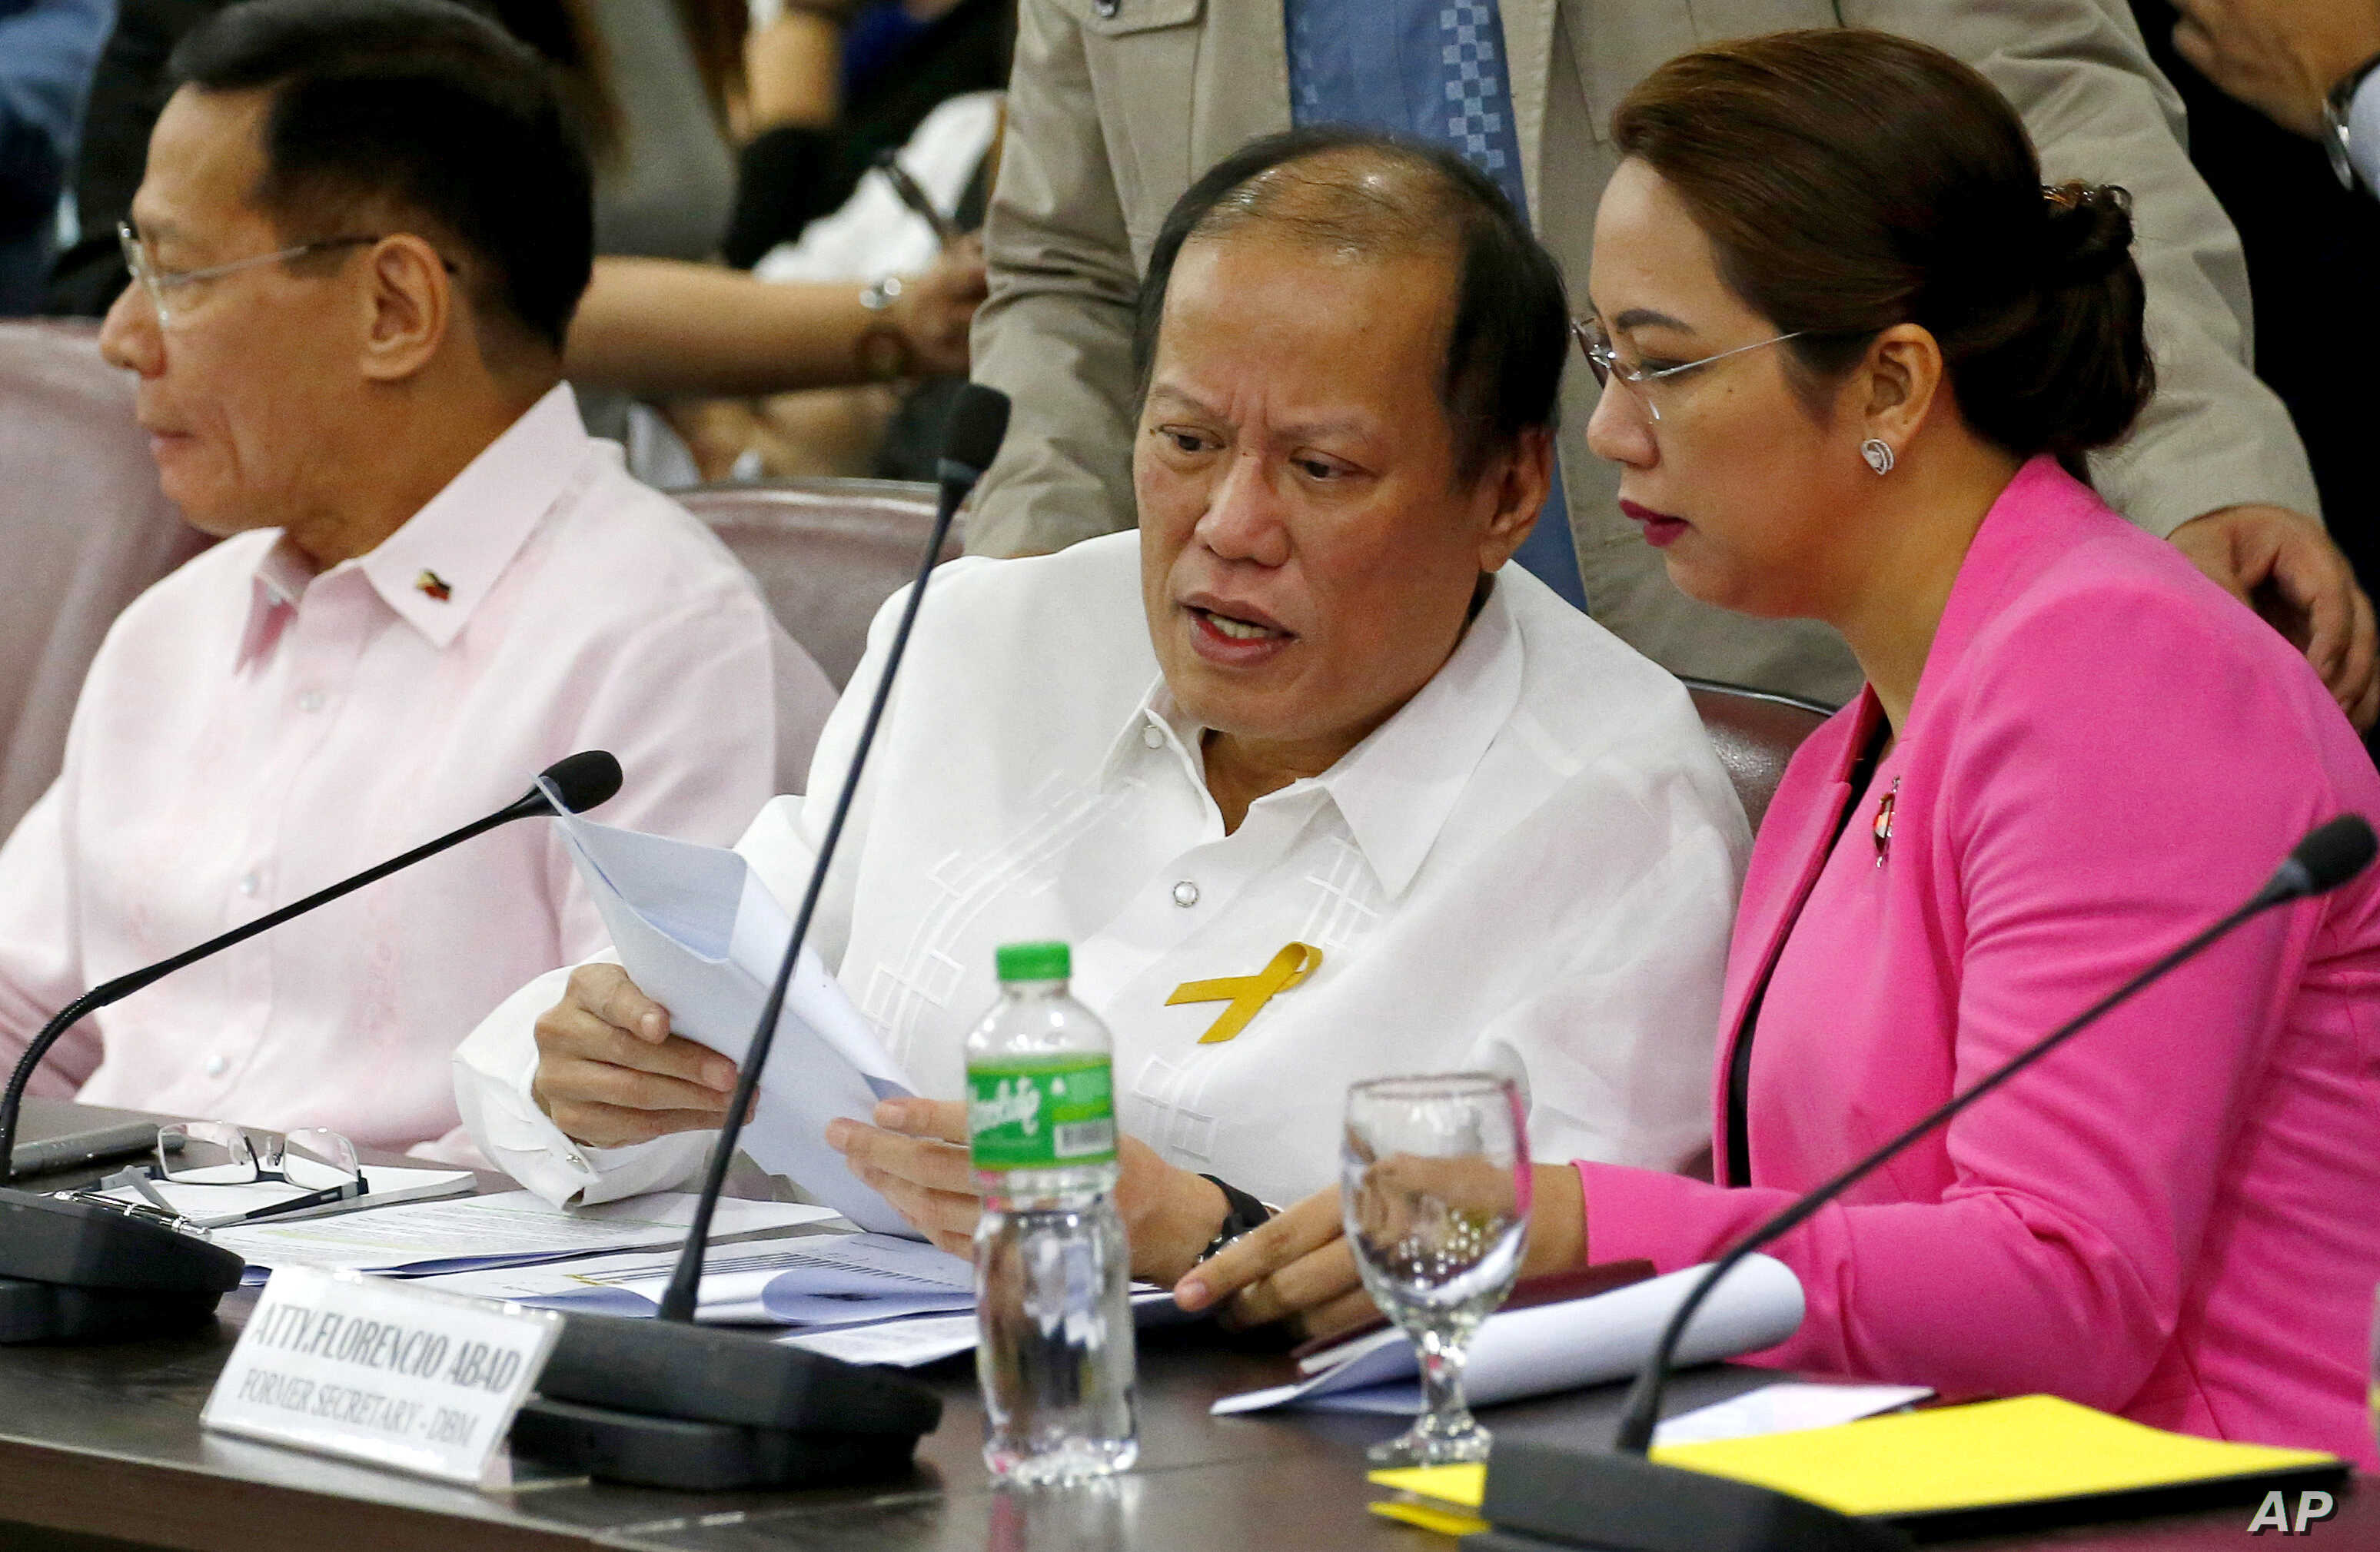 Former Philippine President Benigno Aquino III, center, confers with former Health Secretary Janet Garin as they both testify in a separate Lower House probe on the controversial anti-Dengue vaccine Dengvaxia, Feb. 26, 2018 in suburban Quezon city no...